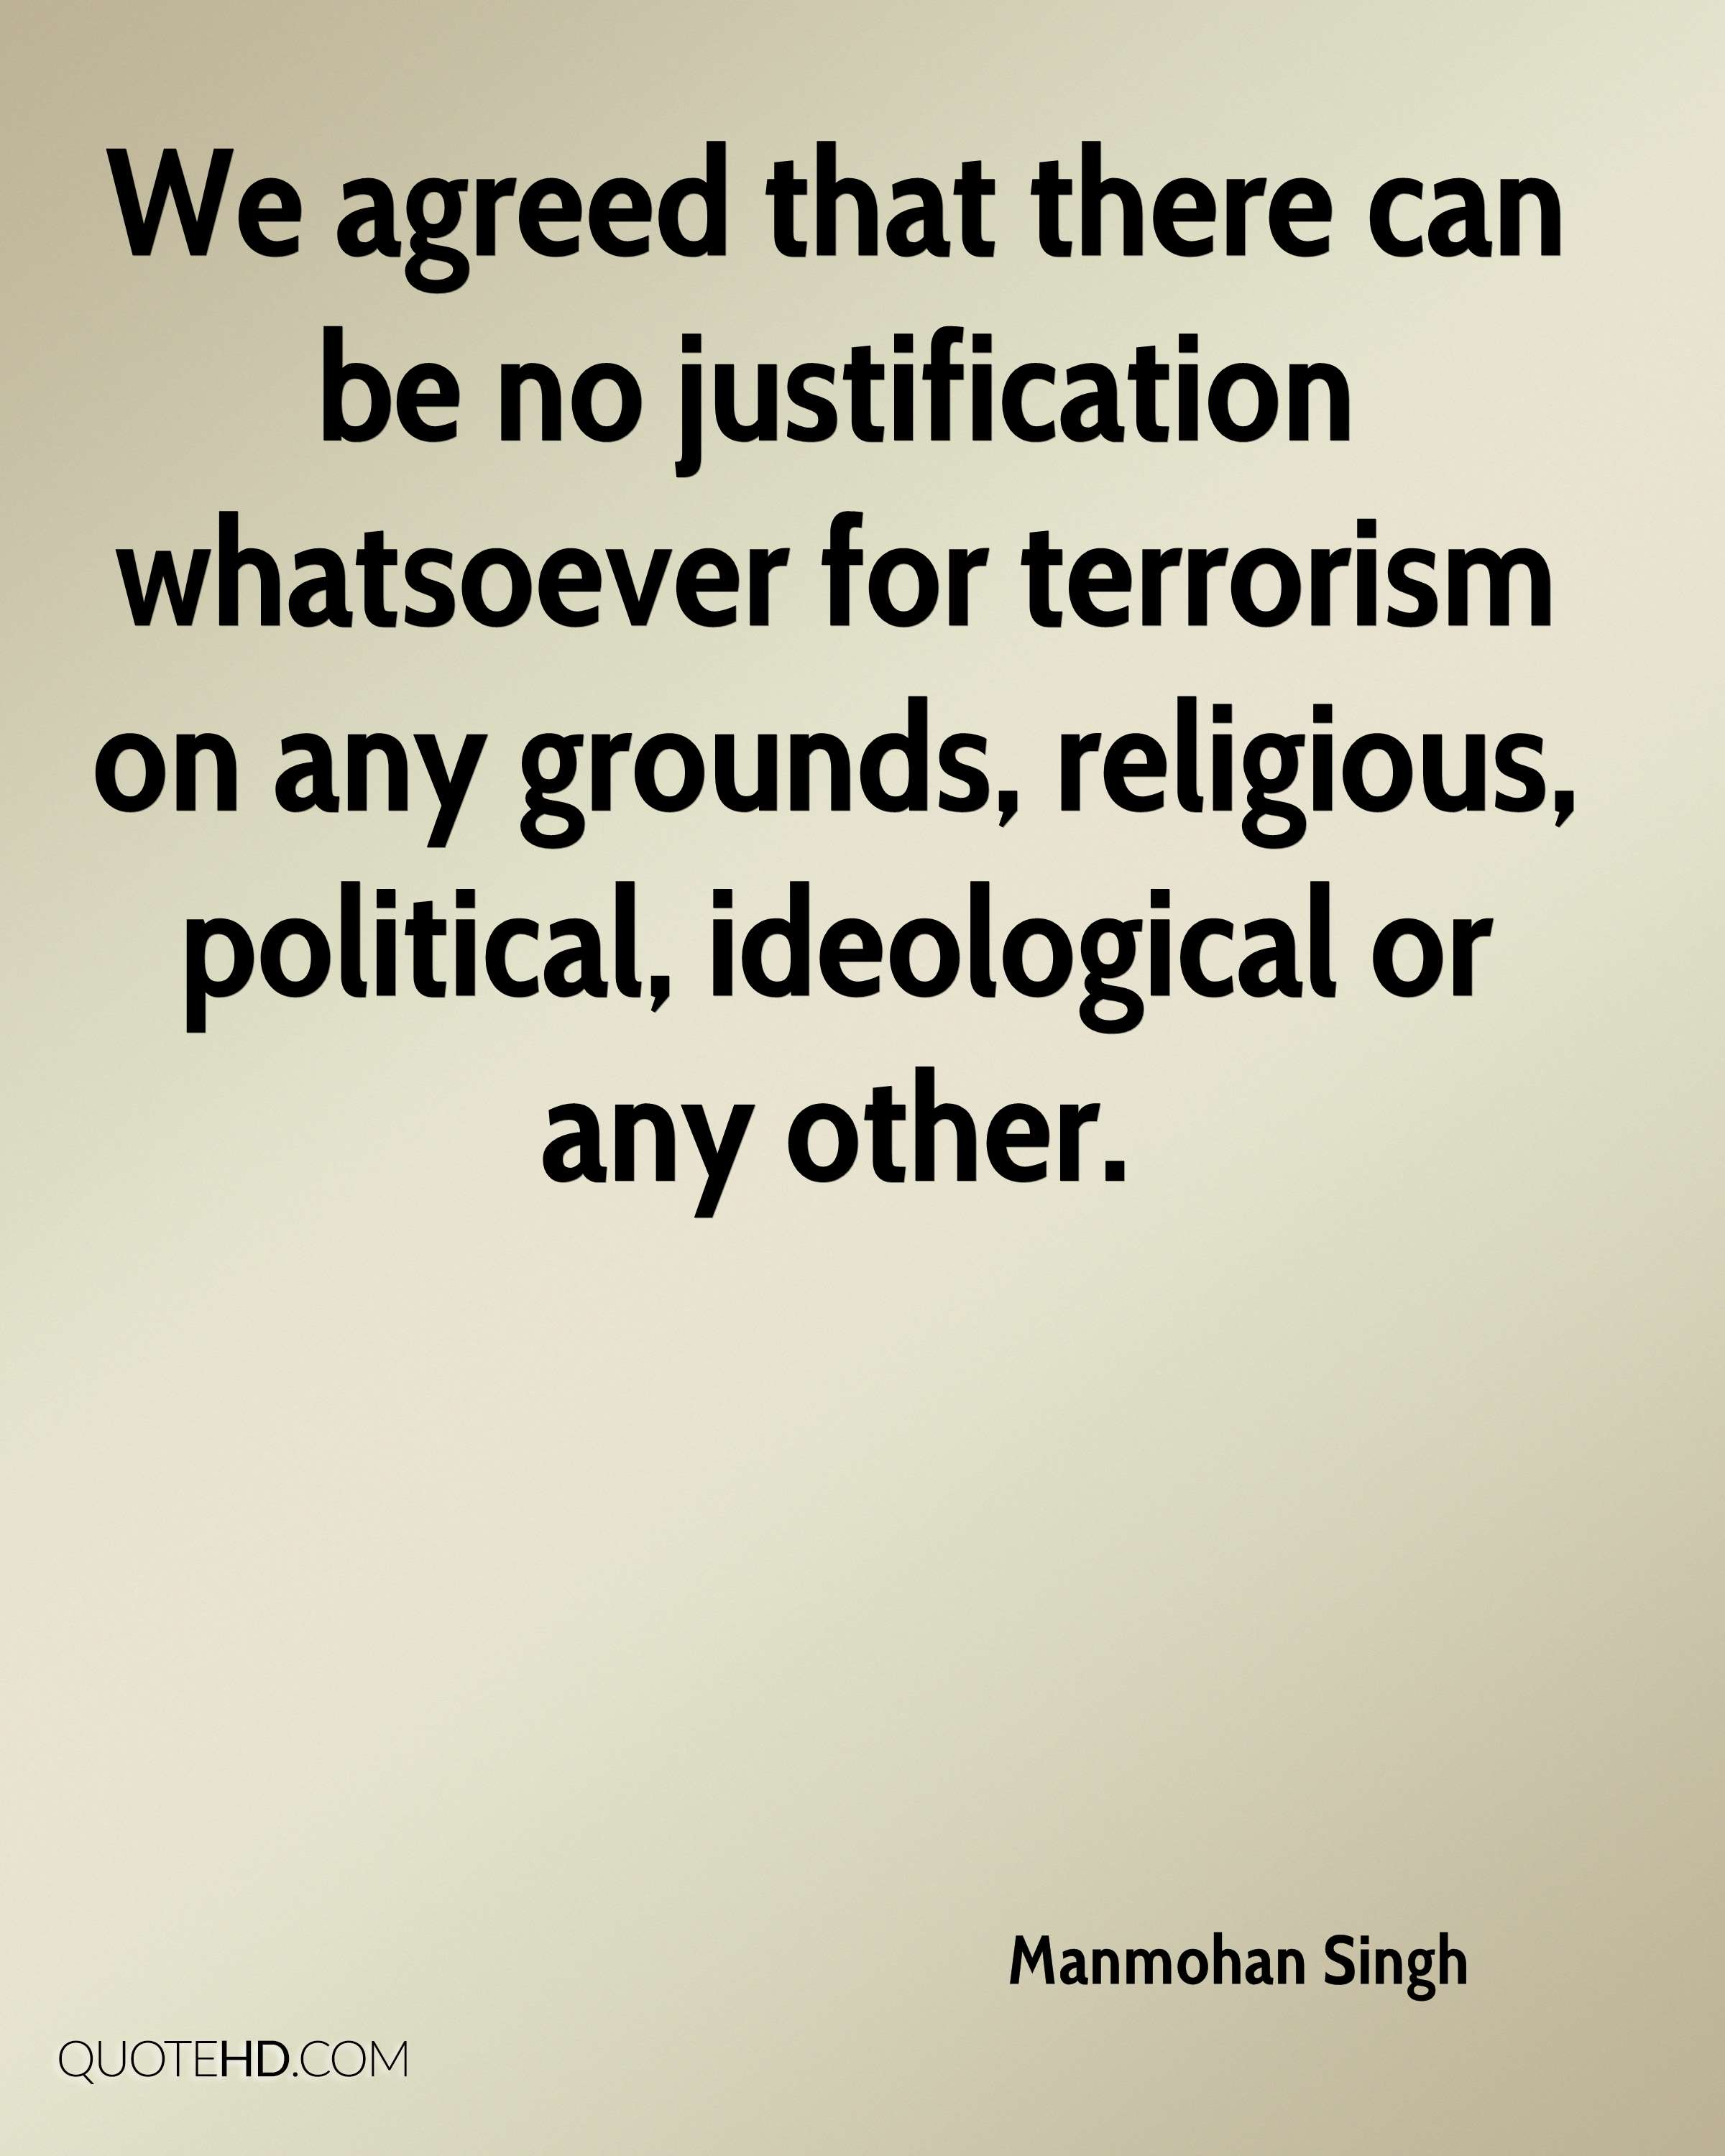 We agreed that there can be no justification whatsoever for terrorism on any grounds, religious, political, ideological or any other.